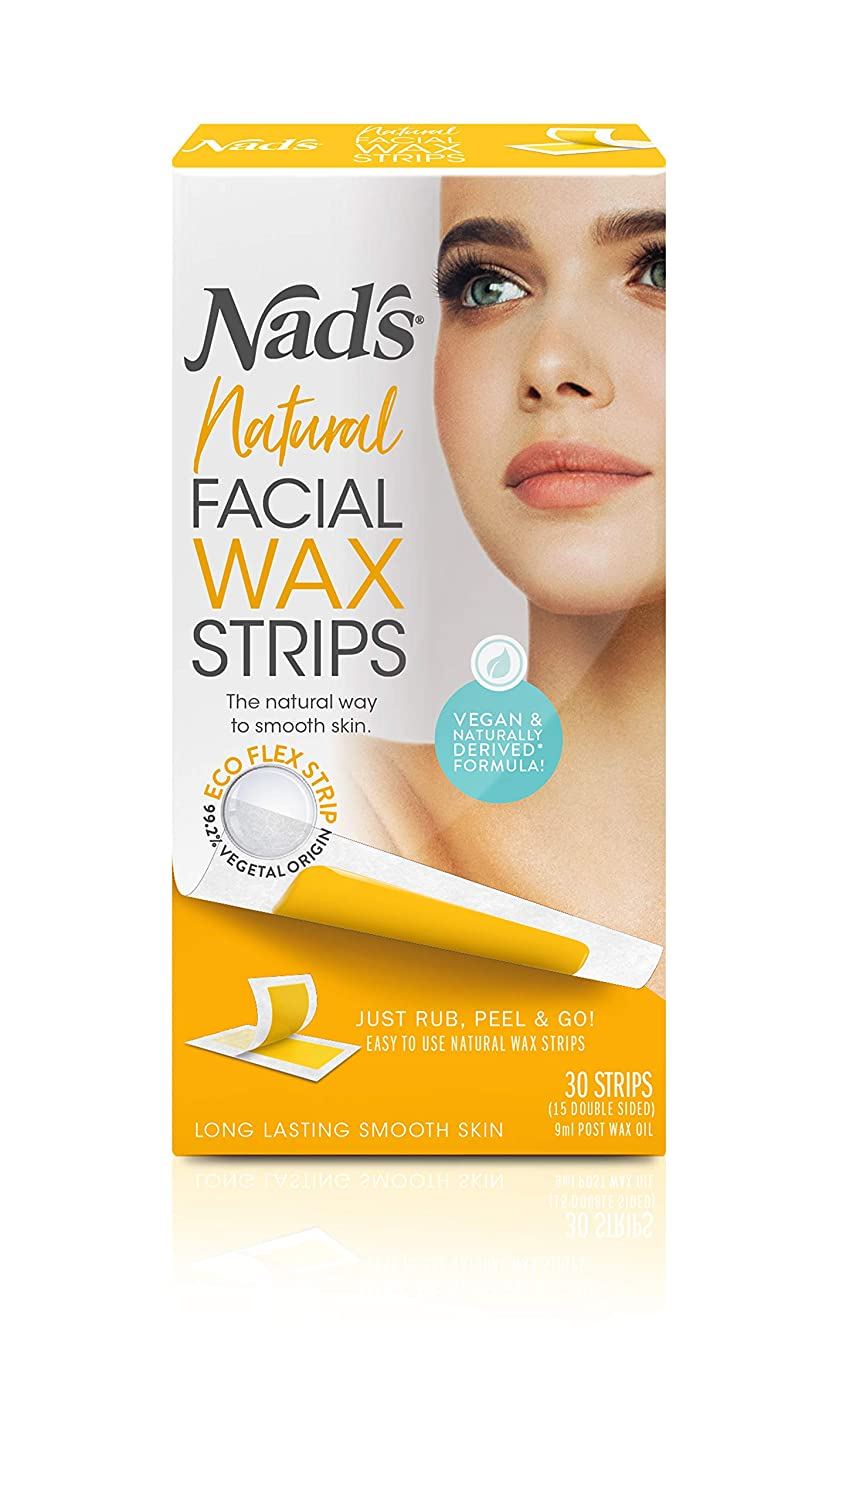 NAD'S facial wax Strips - Natural All Skin Types - Facial Hair Removal for Women - at Home Waxing Kit With 30 Face Wax Strips & post wax Oil